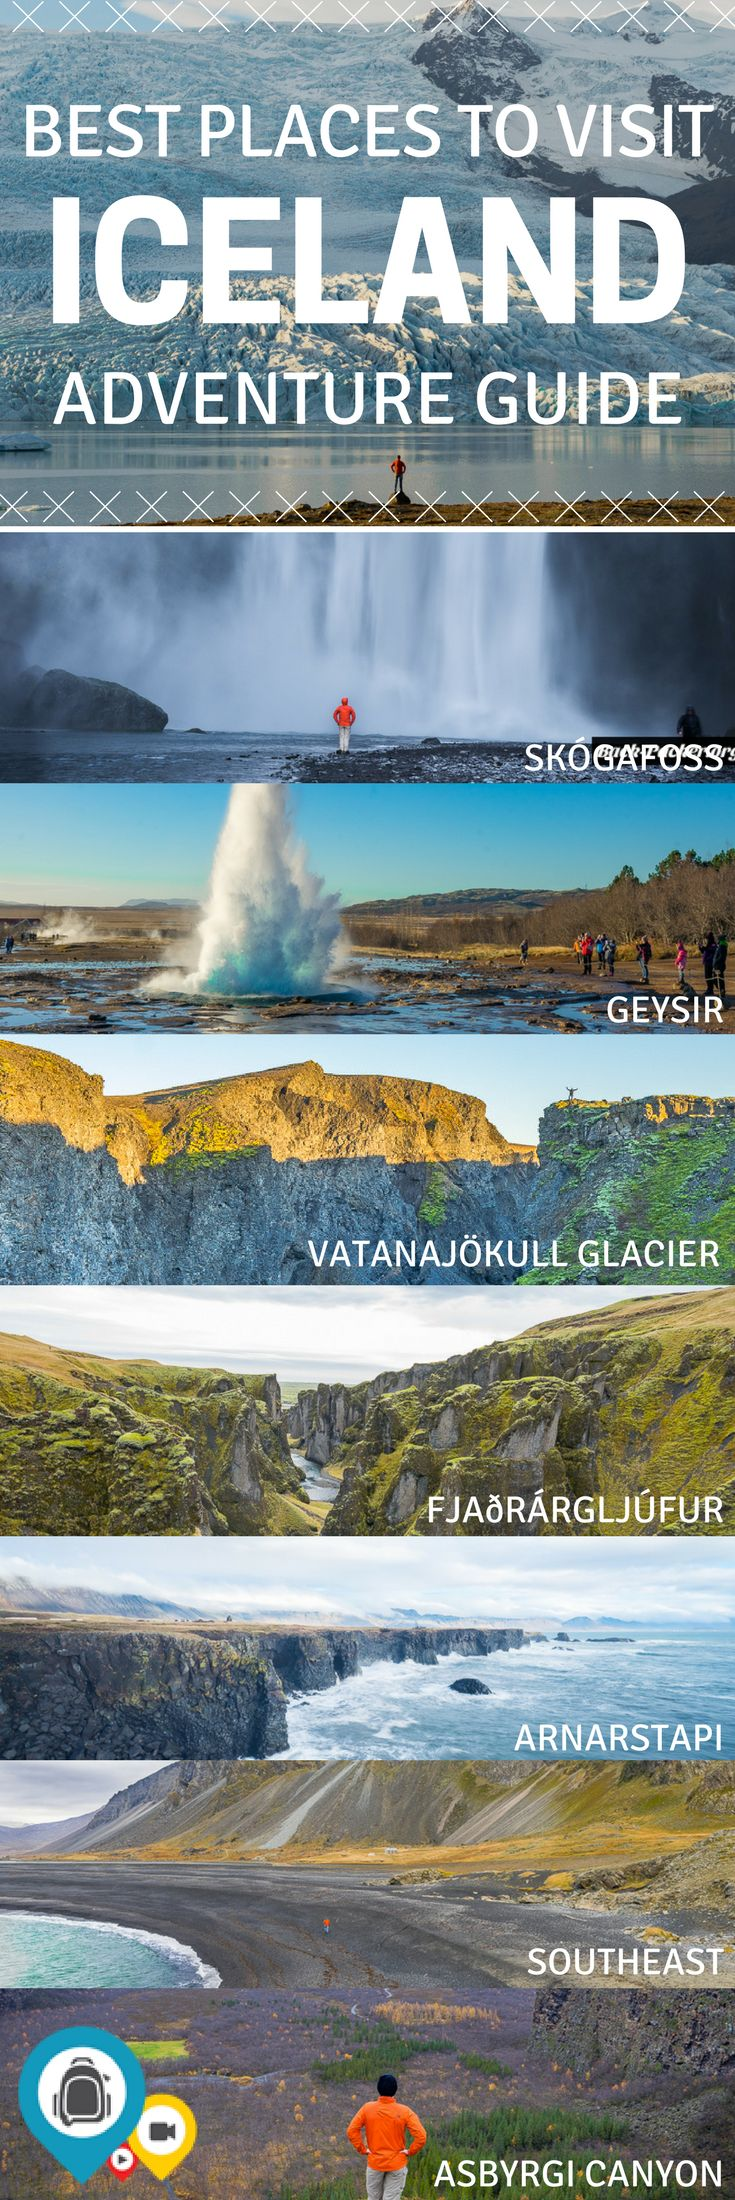 A complete guide for a trip to Iceland in the winter or summer. Take a day trip from Reykjavik to the Skógafoss falls. Ditch the Blue Lagoon and find a smaller hot spring with far less people. Explore the sights along the Golden Circle. Travel to Iceland with the perfect itinerary. | Back-packer.org #Iceland